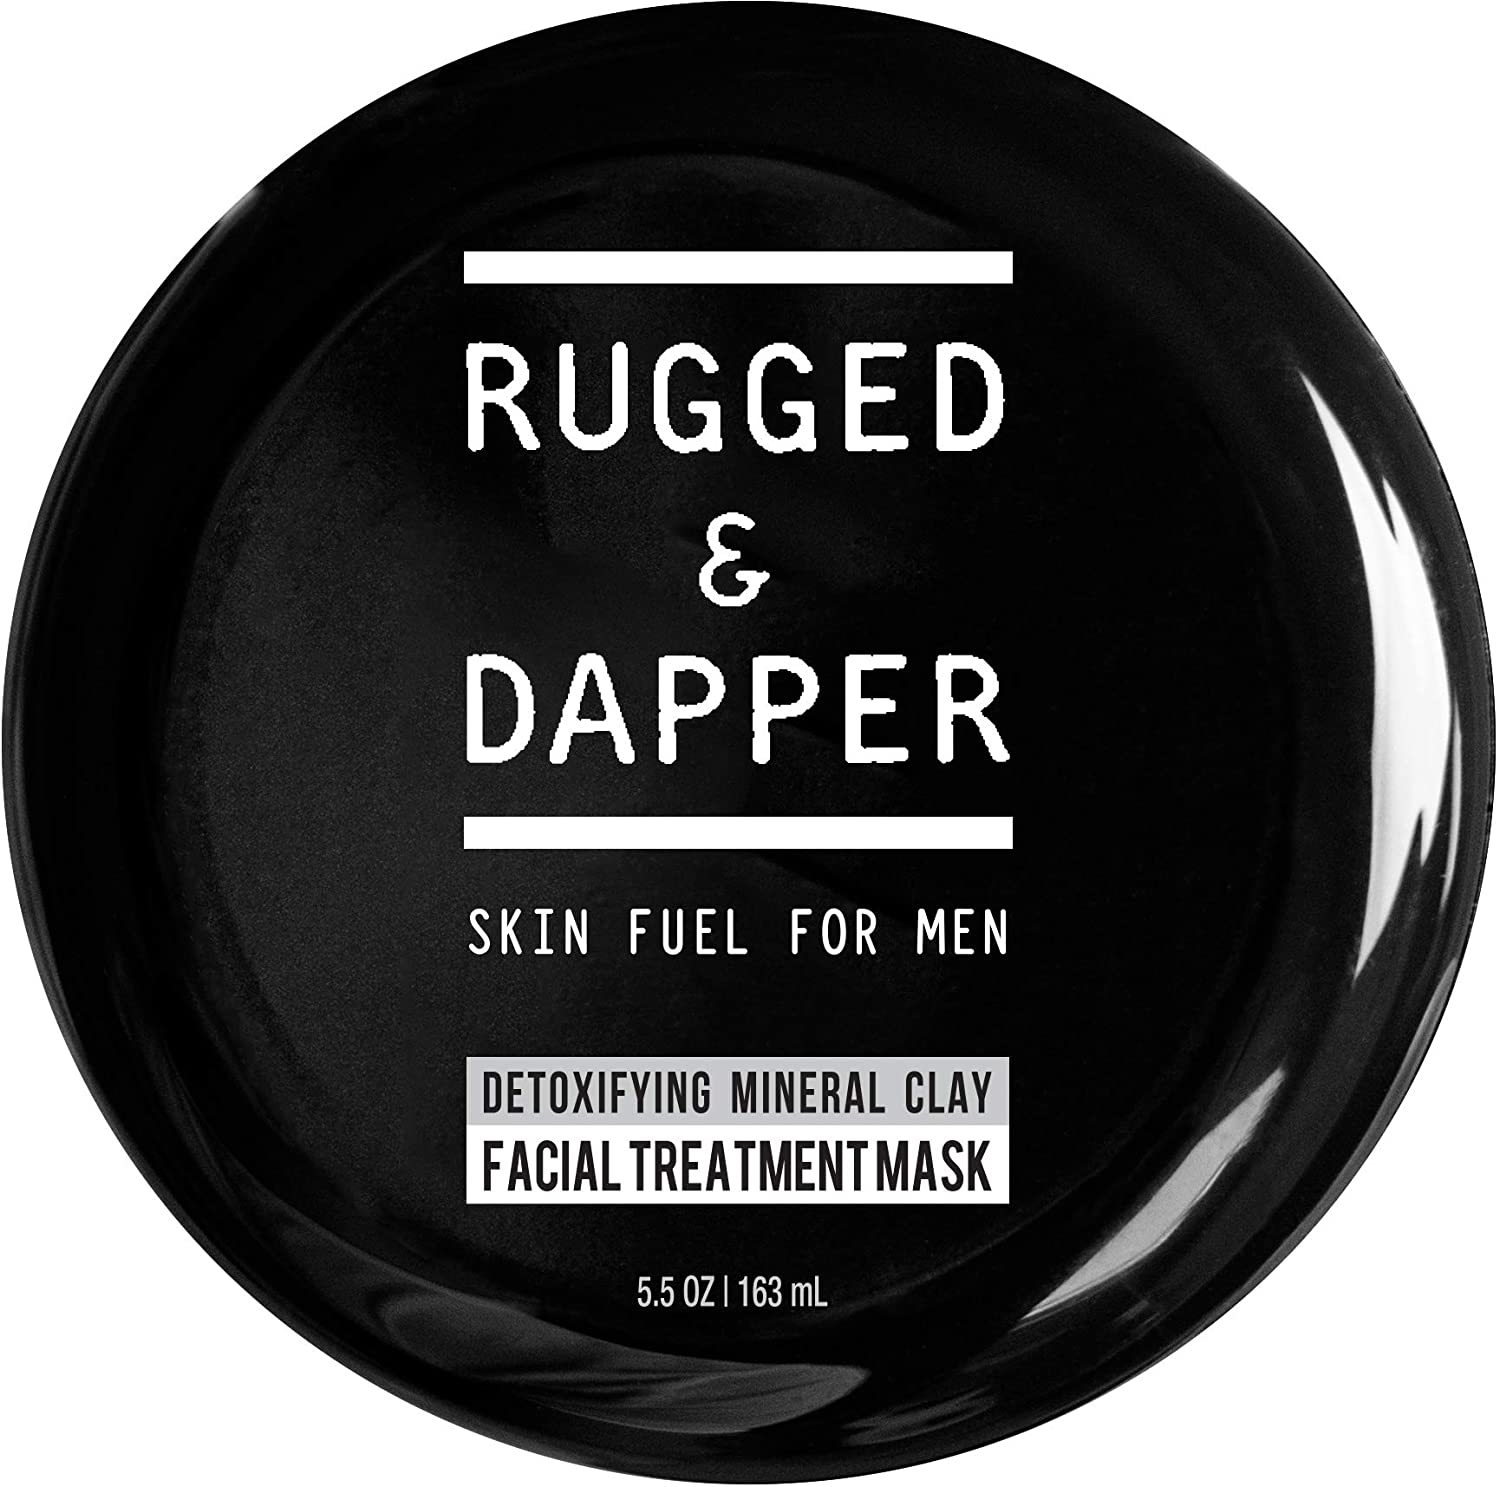 RUGGED & DAPPER Detox and Acne Face Mask for Men, 5.5 Oz